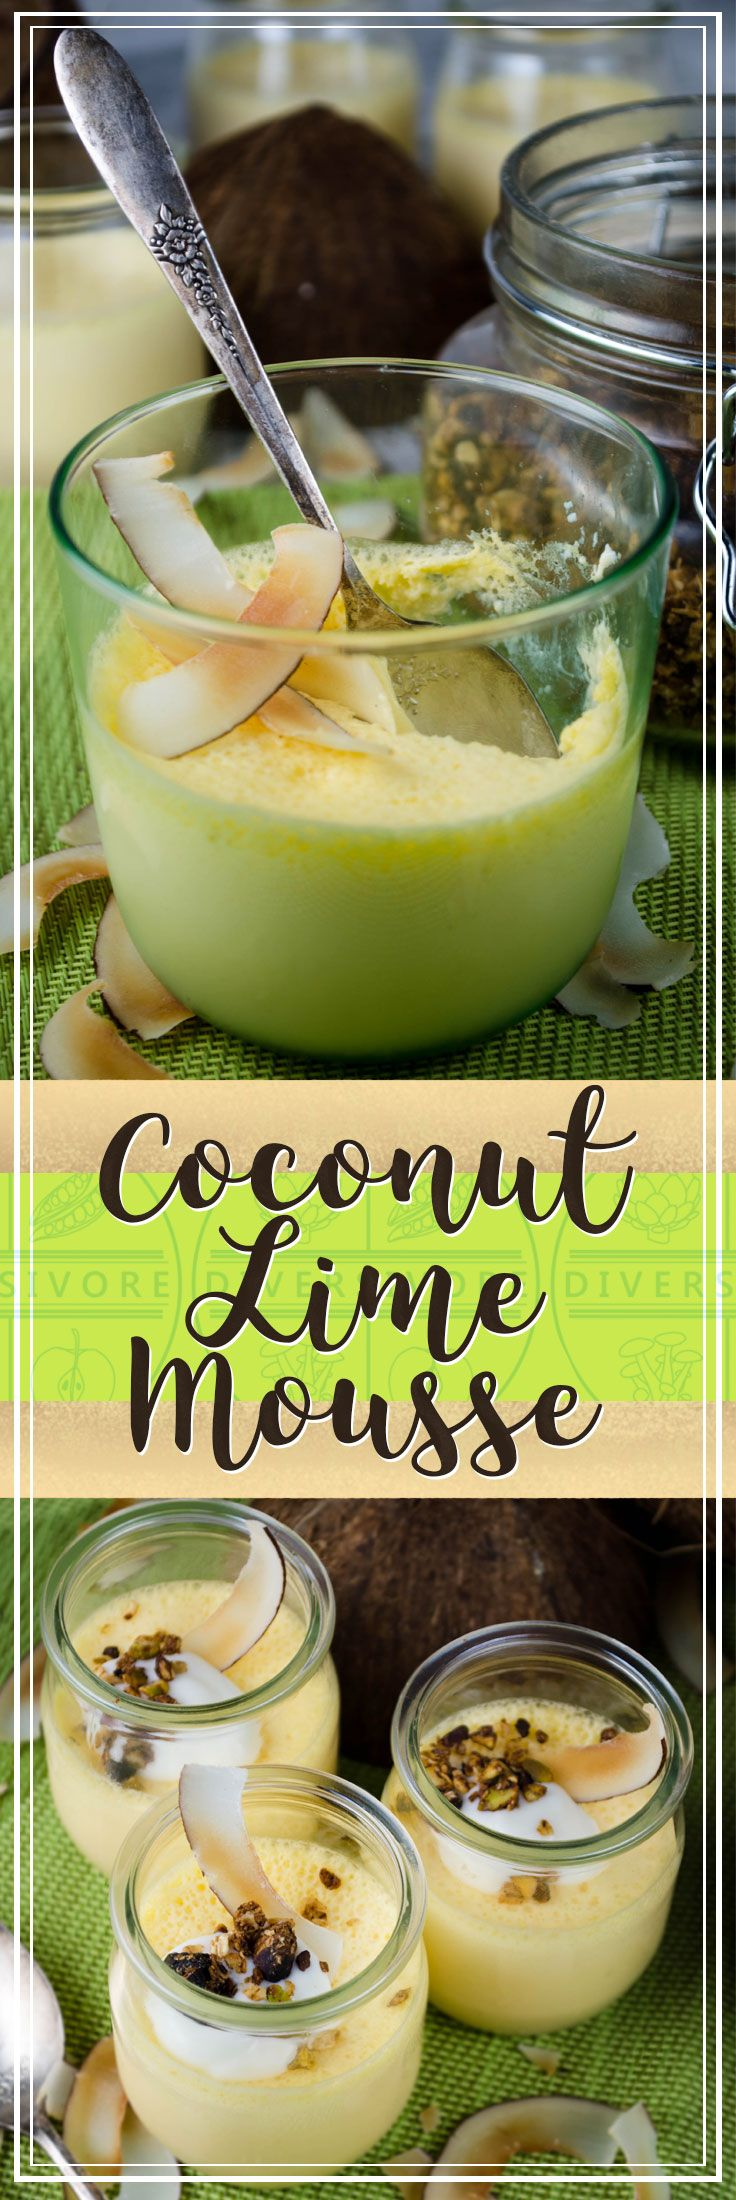 Coconut Lime Mousse - simple, delicious, and surprisingly healthy